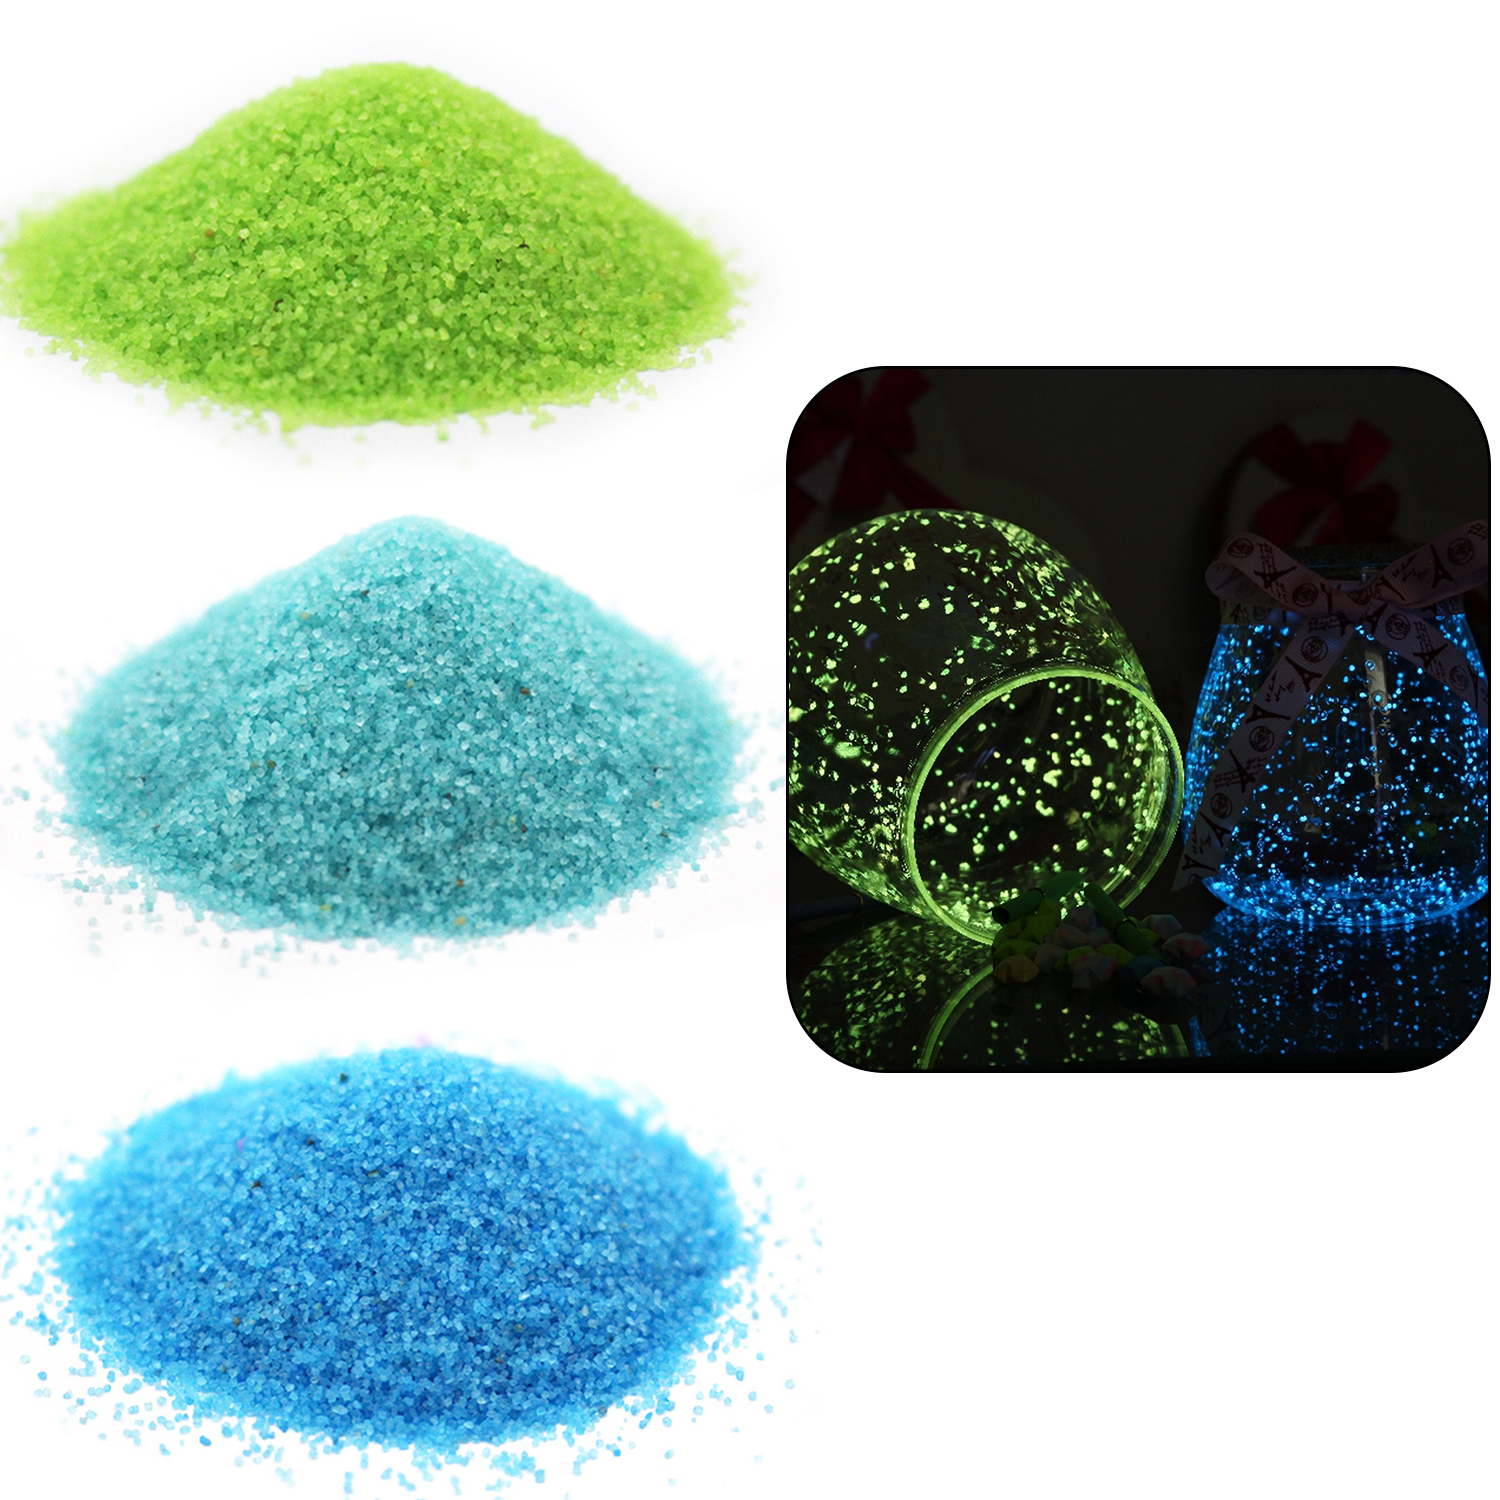 20g Luminous Noctilucent Sand Fish Tank Fluorescent Glow In The Dark Pigment Powder For Party Wishing Bottle DIY Decoration